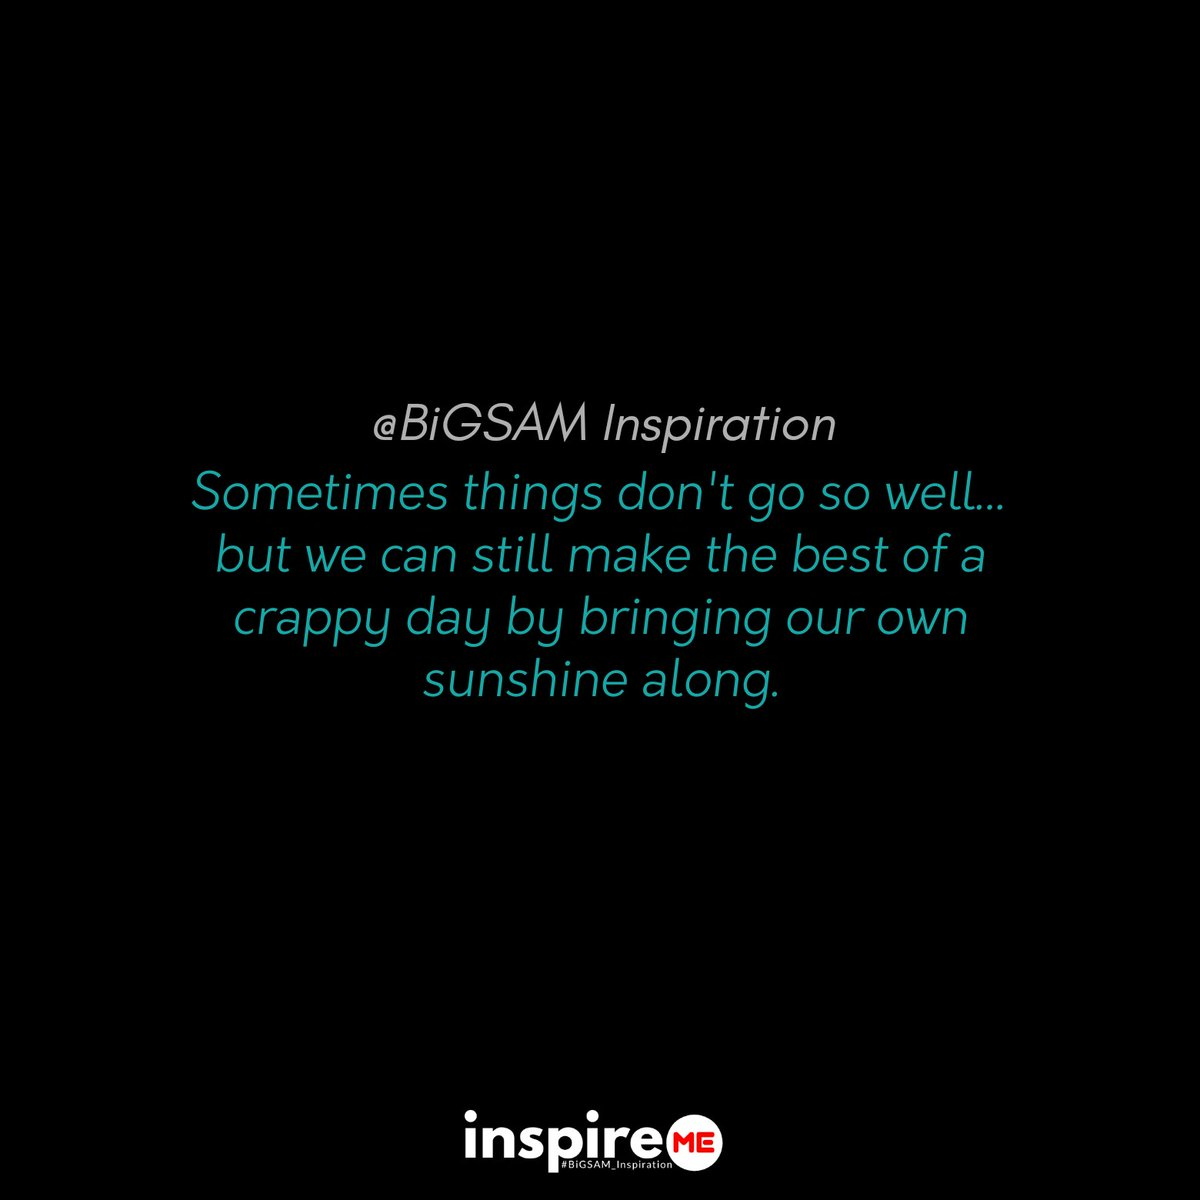 inspireME #FunFriday #inspireME #quickthoughts #bigsam_inspiration #encouragement #quotes #comments #TFLers #tweegram #quoteoftheday #funny #life #instagood #love #photooftheday #igers #instagramhub #instadaily #true #instamood #wordstoliveby #_insidethoughts_